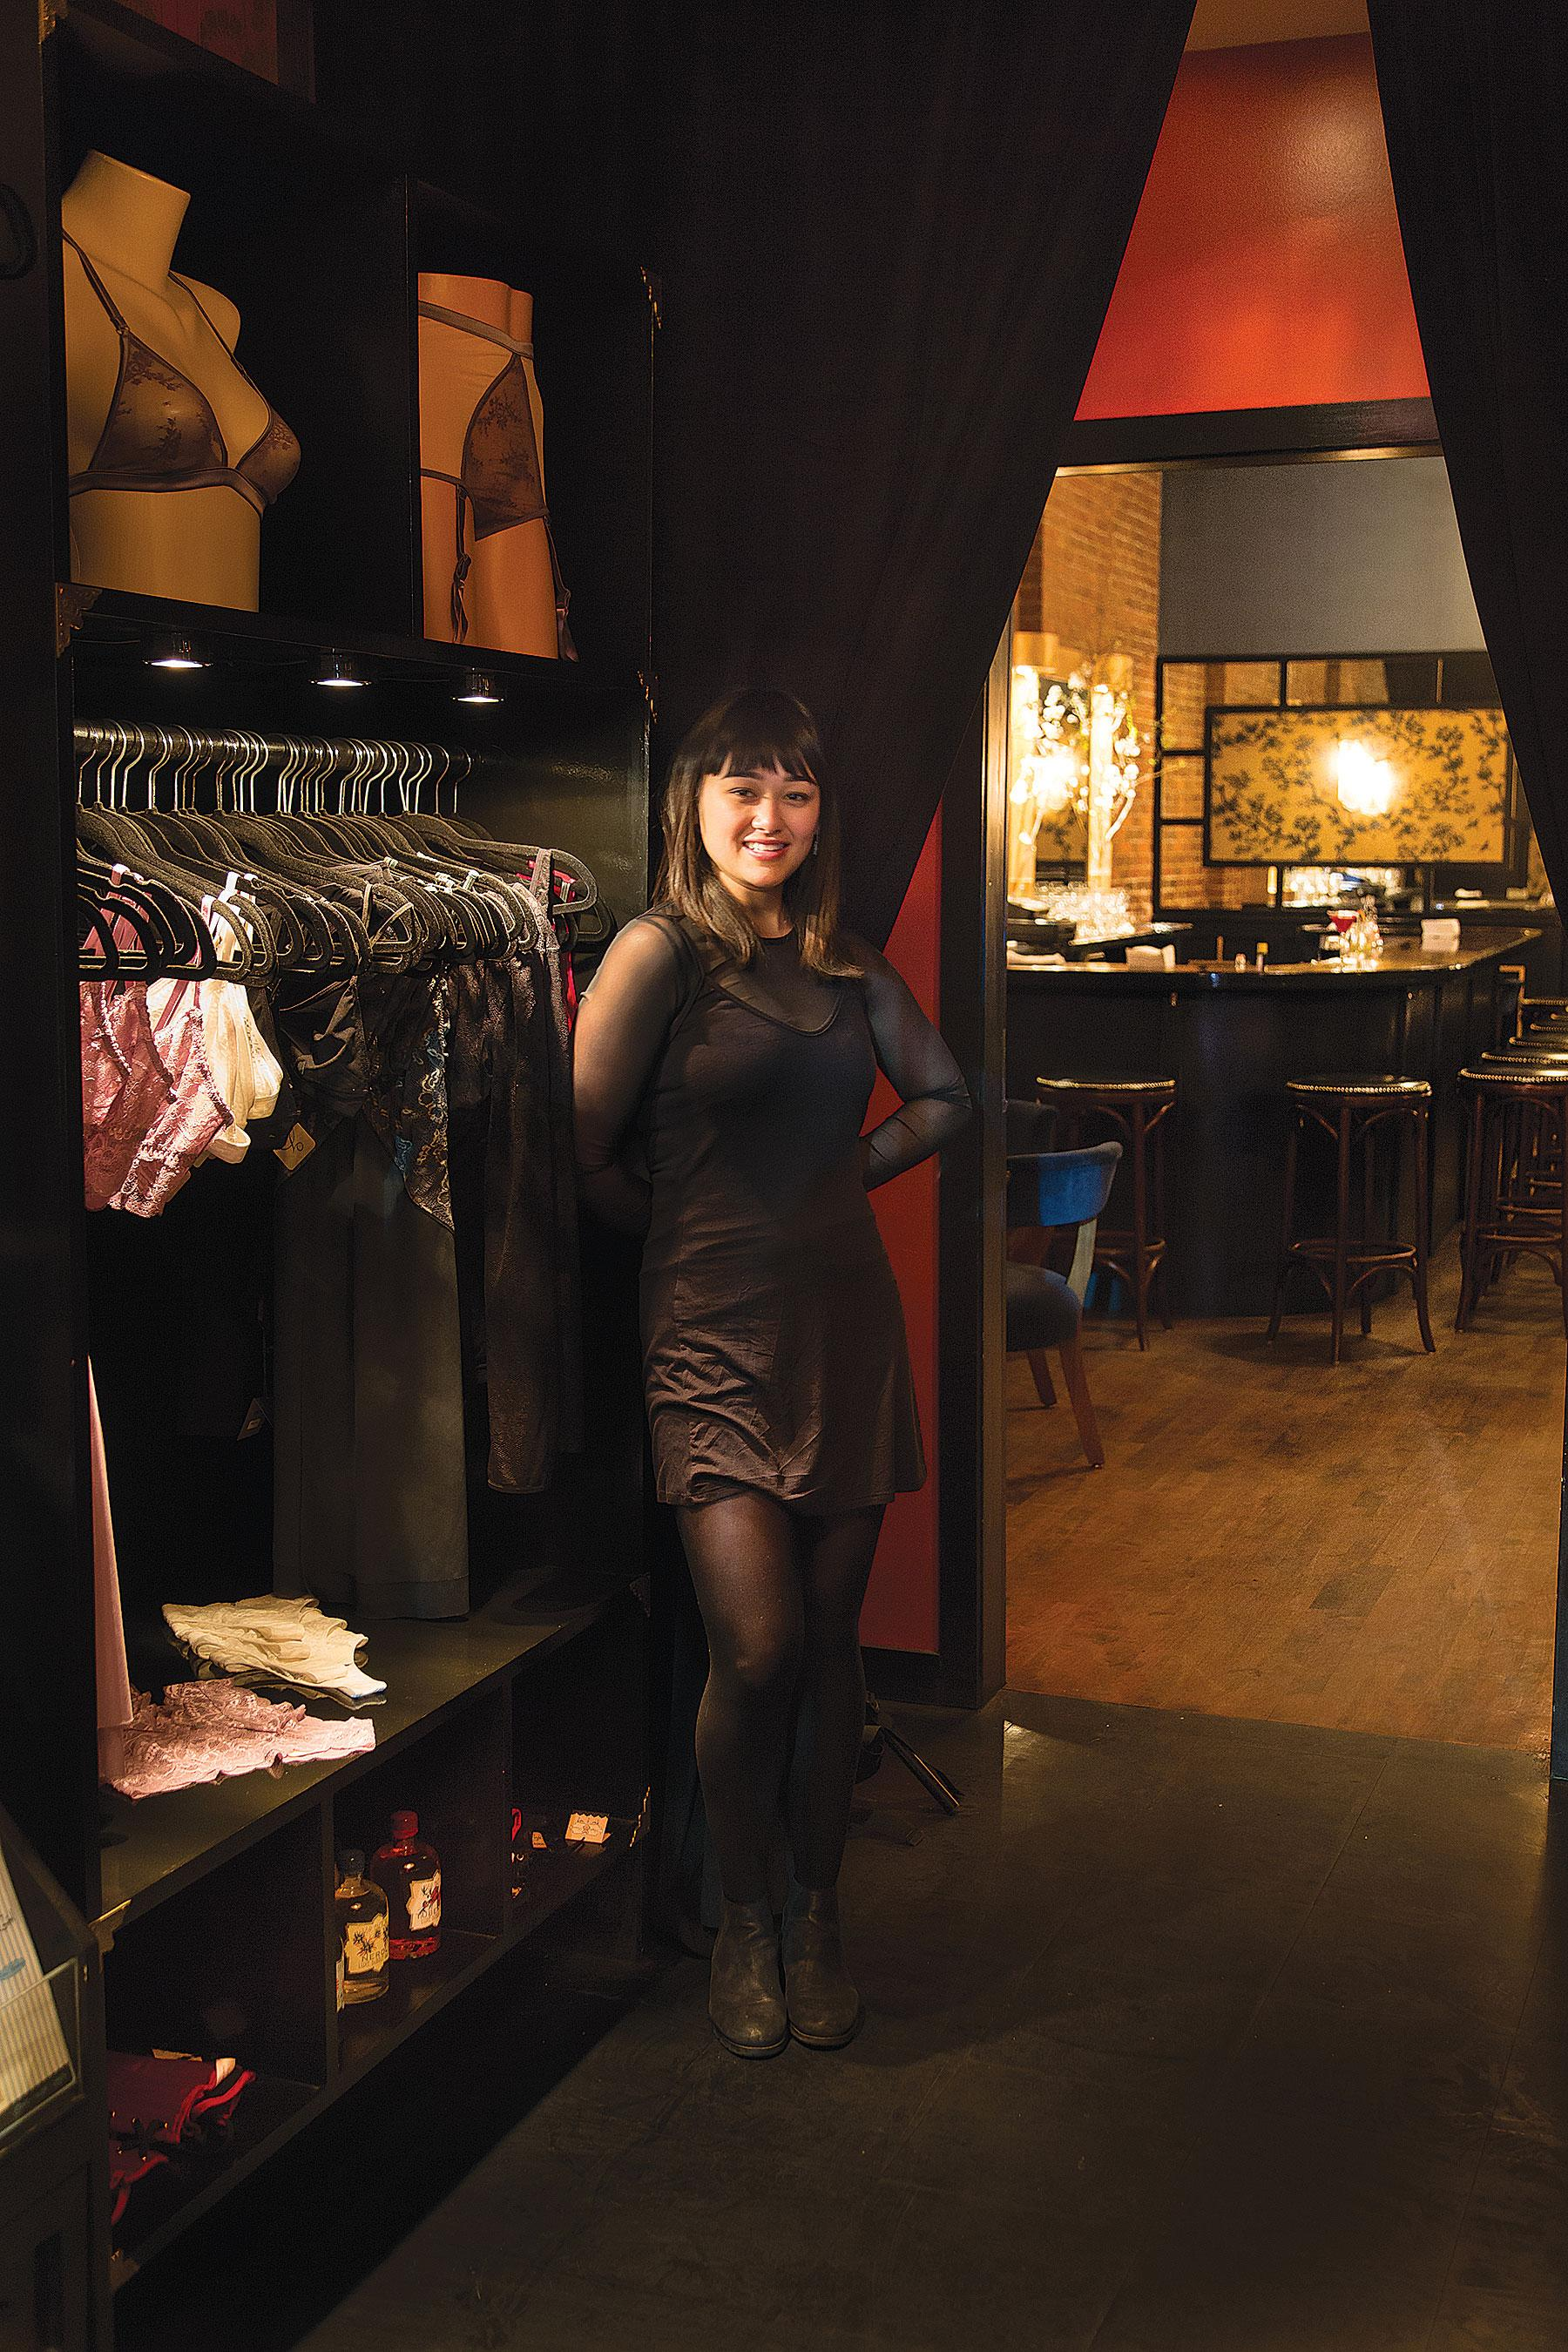 Hostess Kristen Gold Welcomes Visitors To Hidden Bar Justine's, Reminiscent  Of An Era When Every